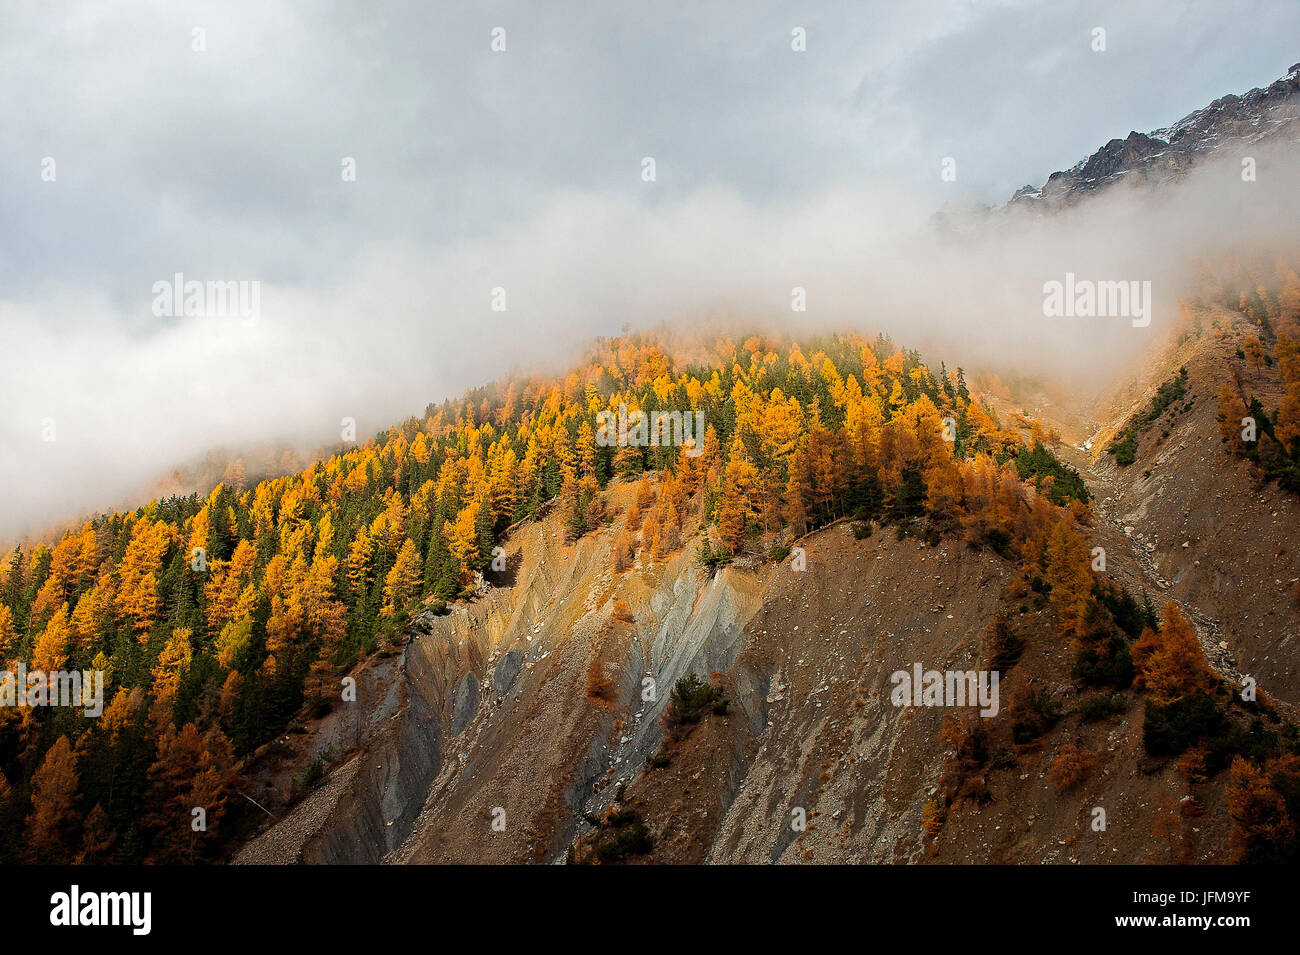 Val Zebru, Bormio, Lombardy, Italy One glimmer of light is the space between the clouds and illuminates the Val - Stock Image